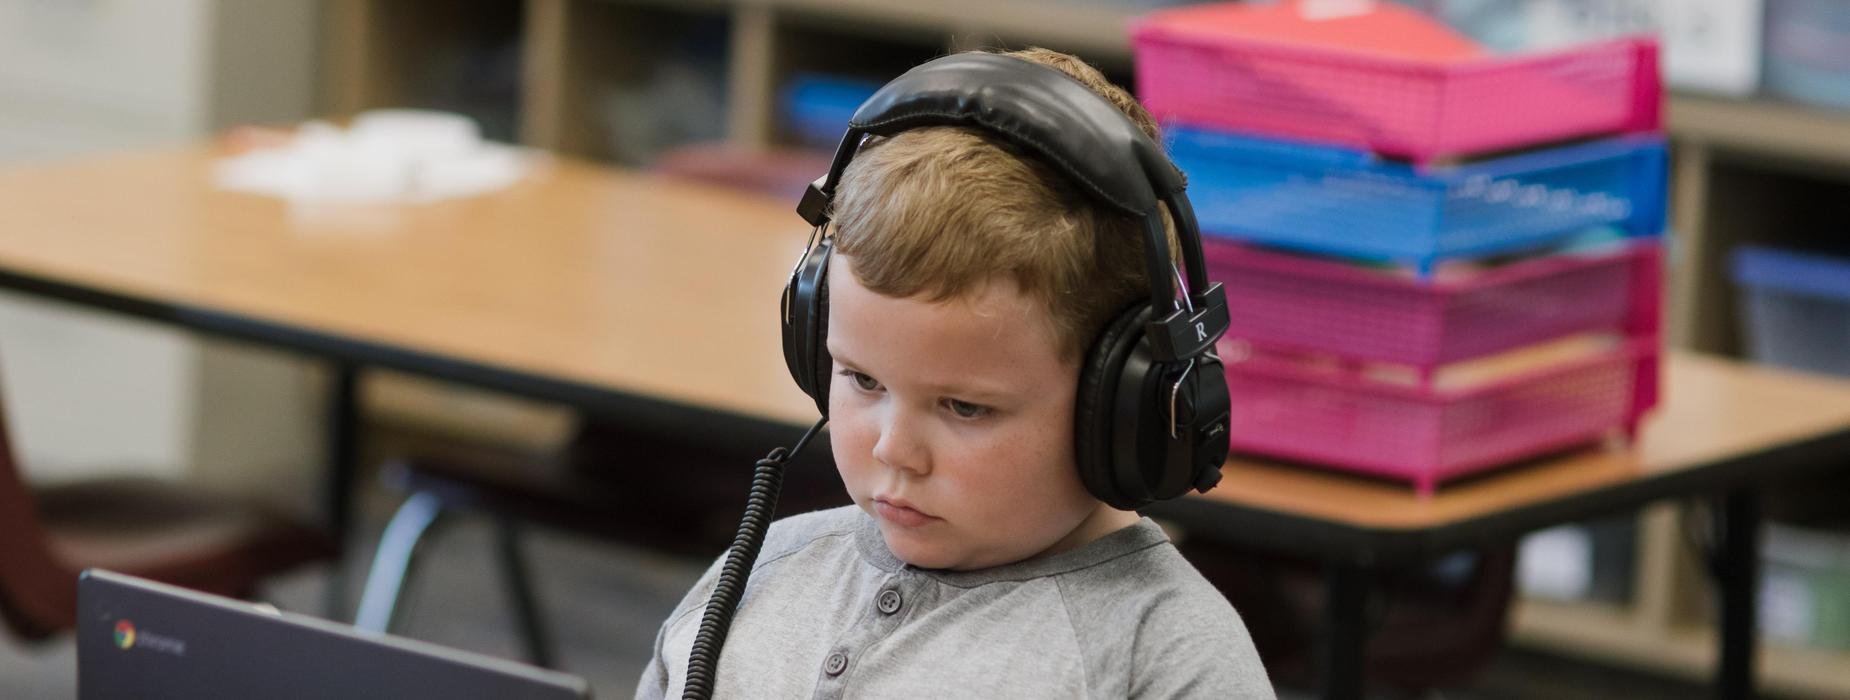 Student with Headphones